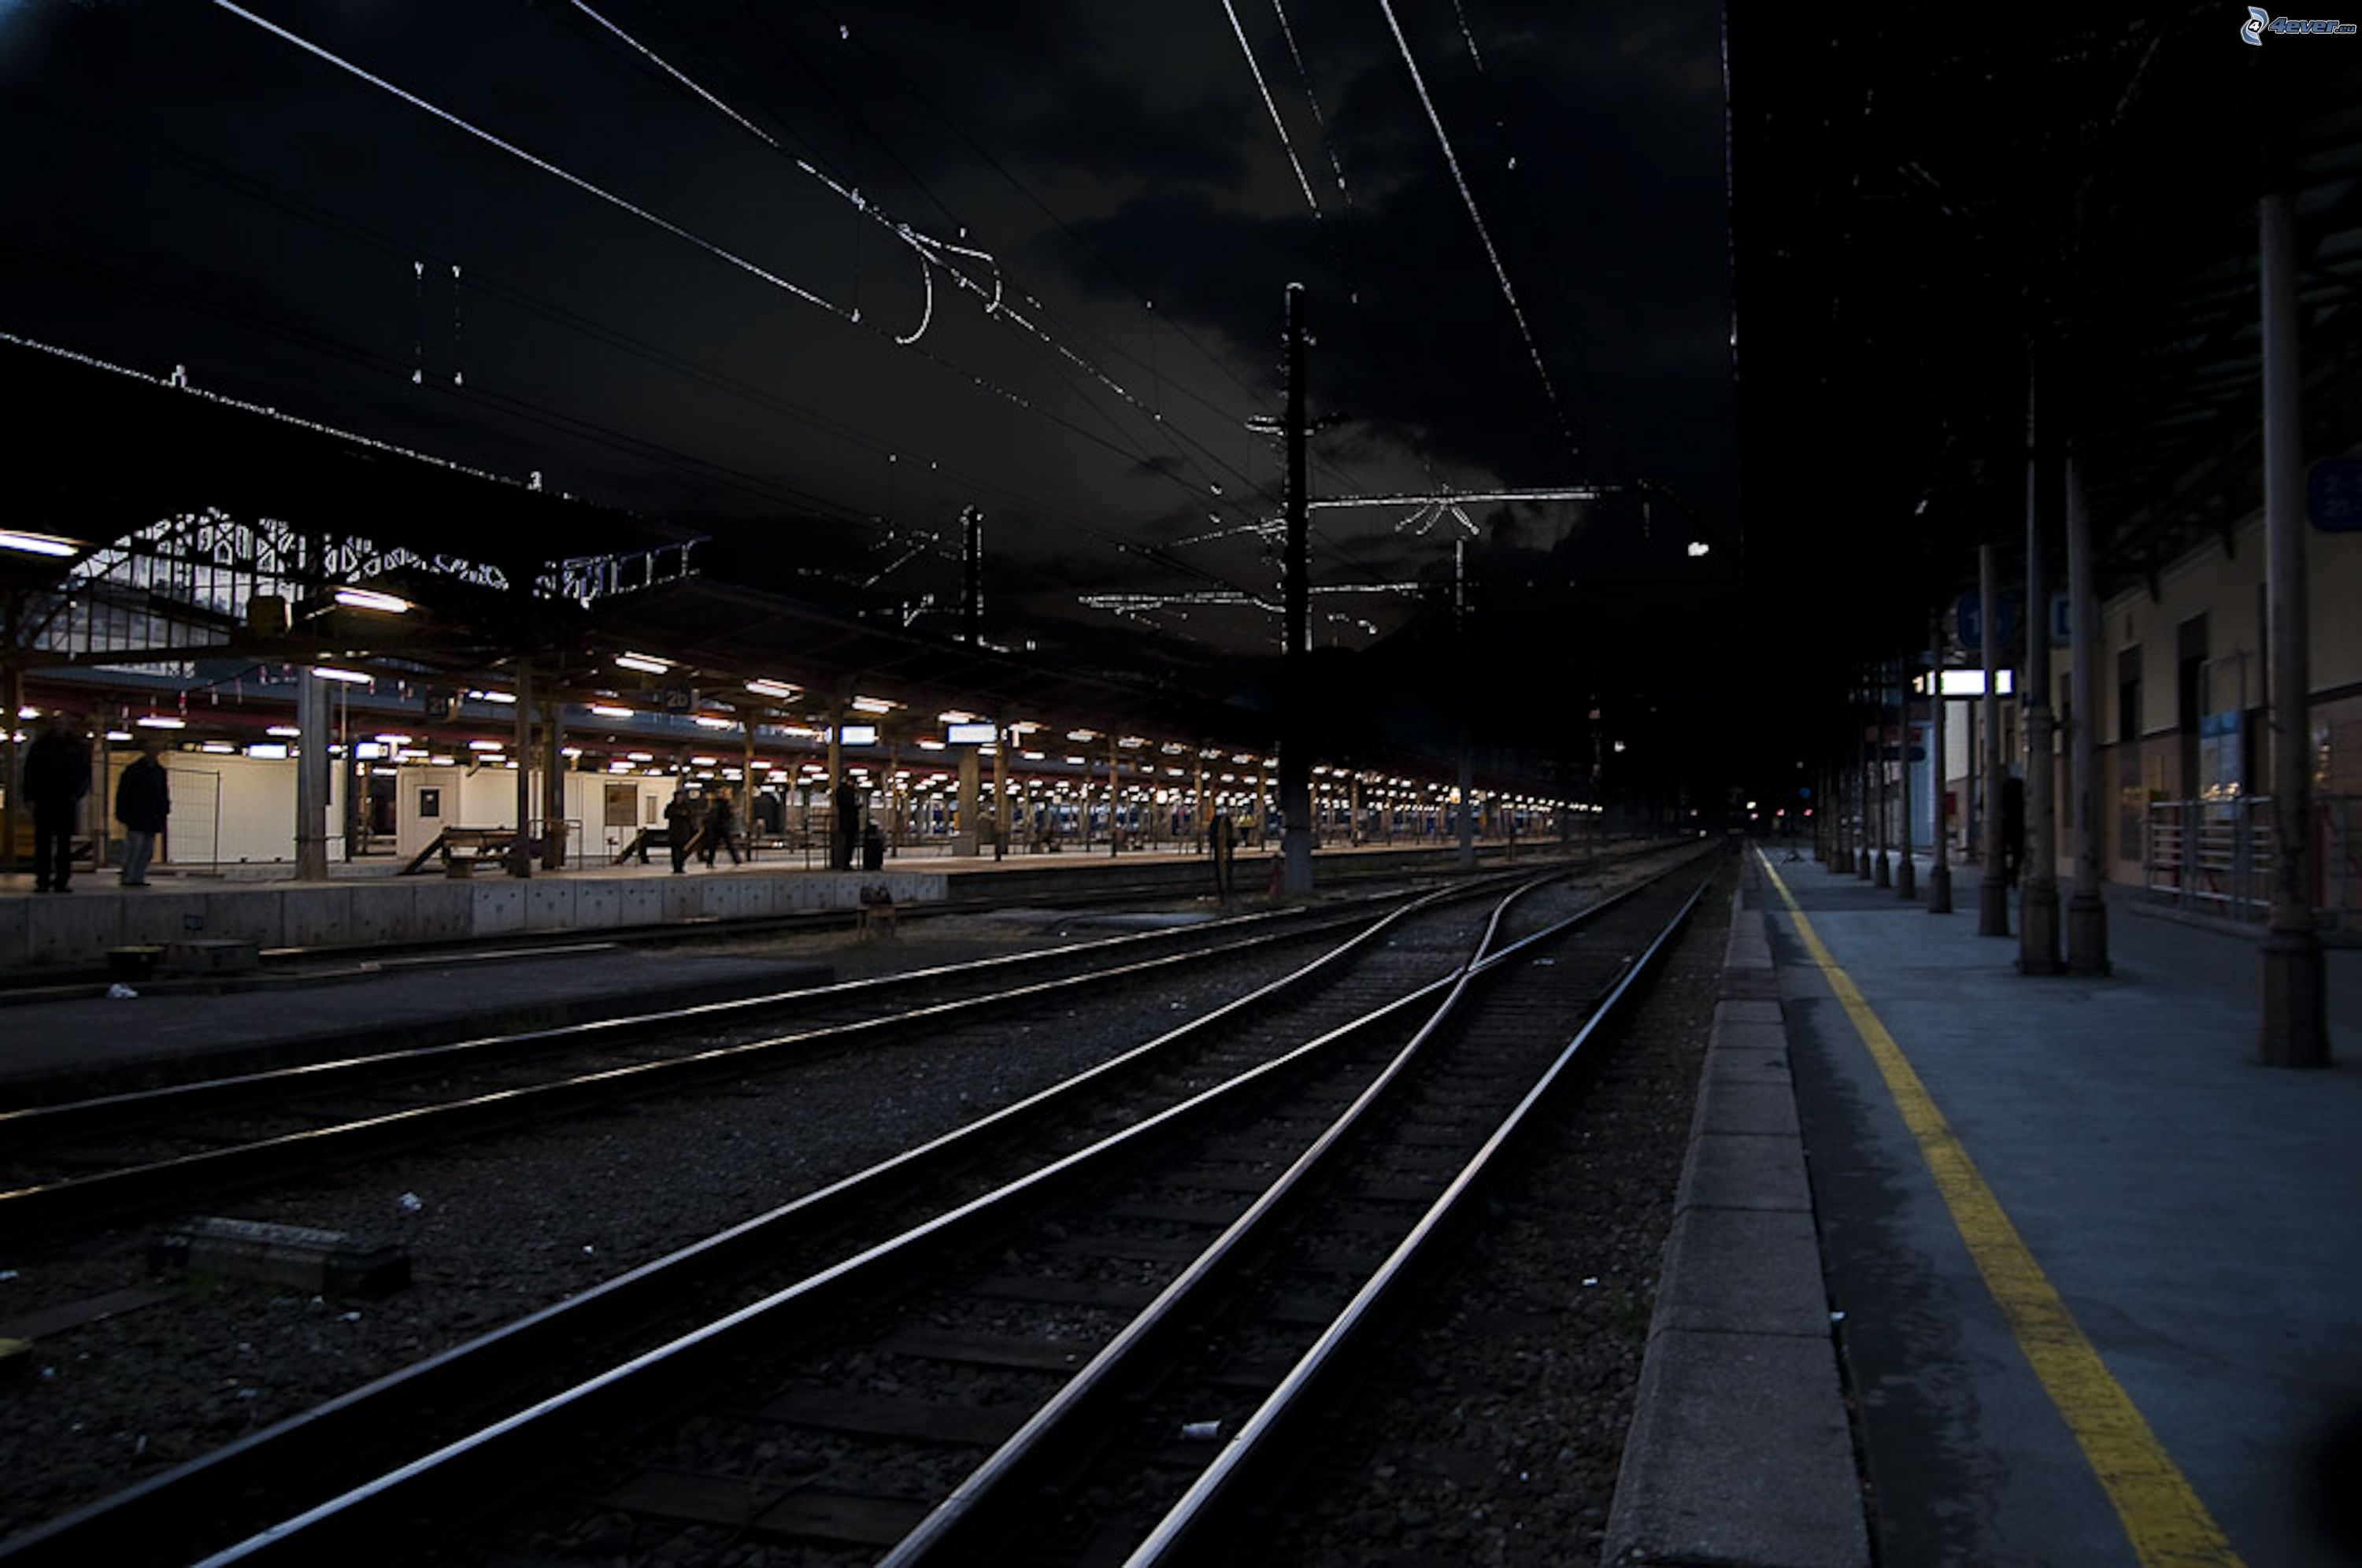 One night on the railway station